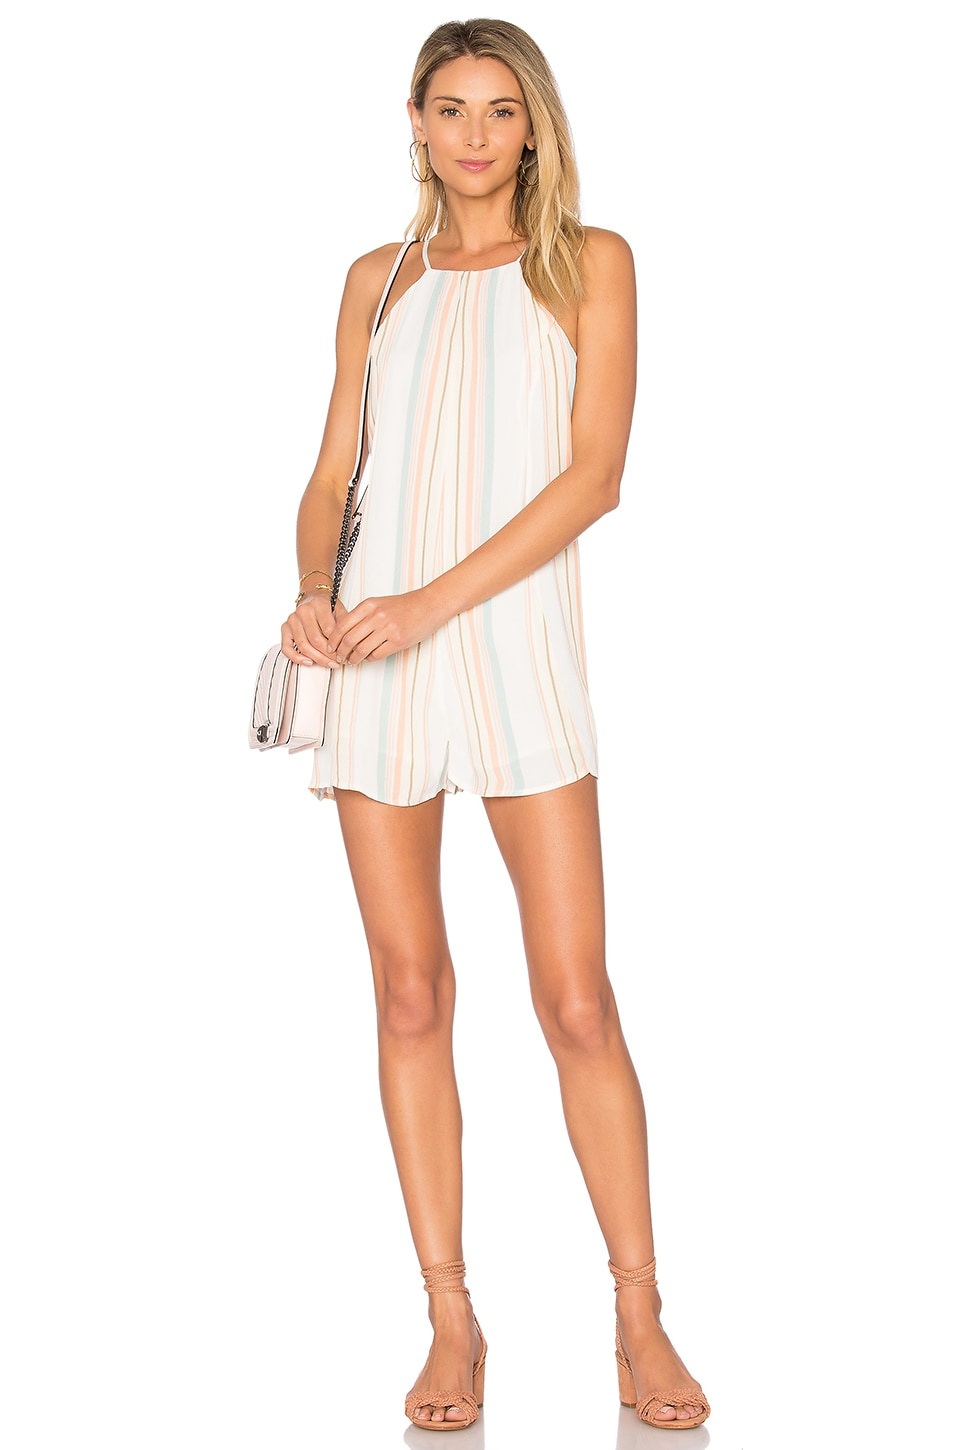 Privacy Please Lucca Romper in Multi Stripe